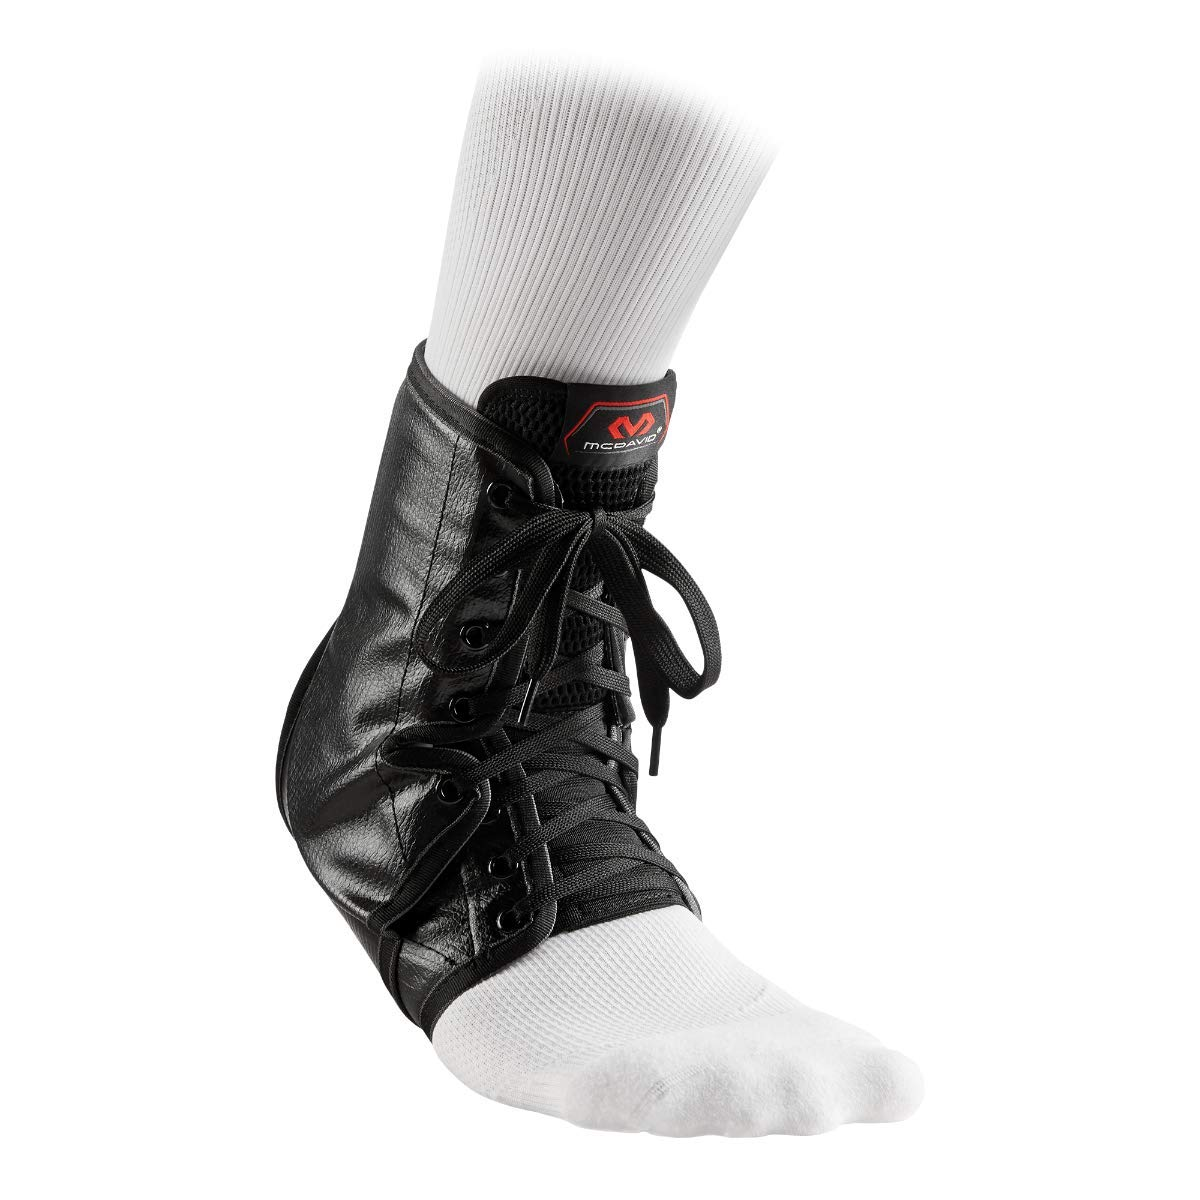 McDavid Ankle Brace Lace-Up w/Inserts, Maximum Strength Ankle Support to Help Prevent & Recover from Ankle Sprains